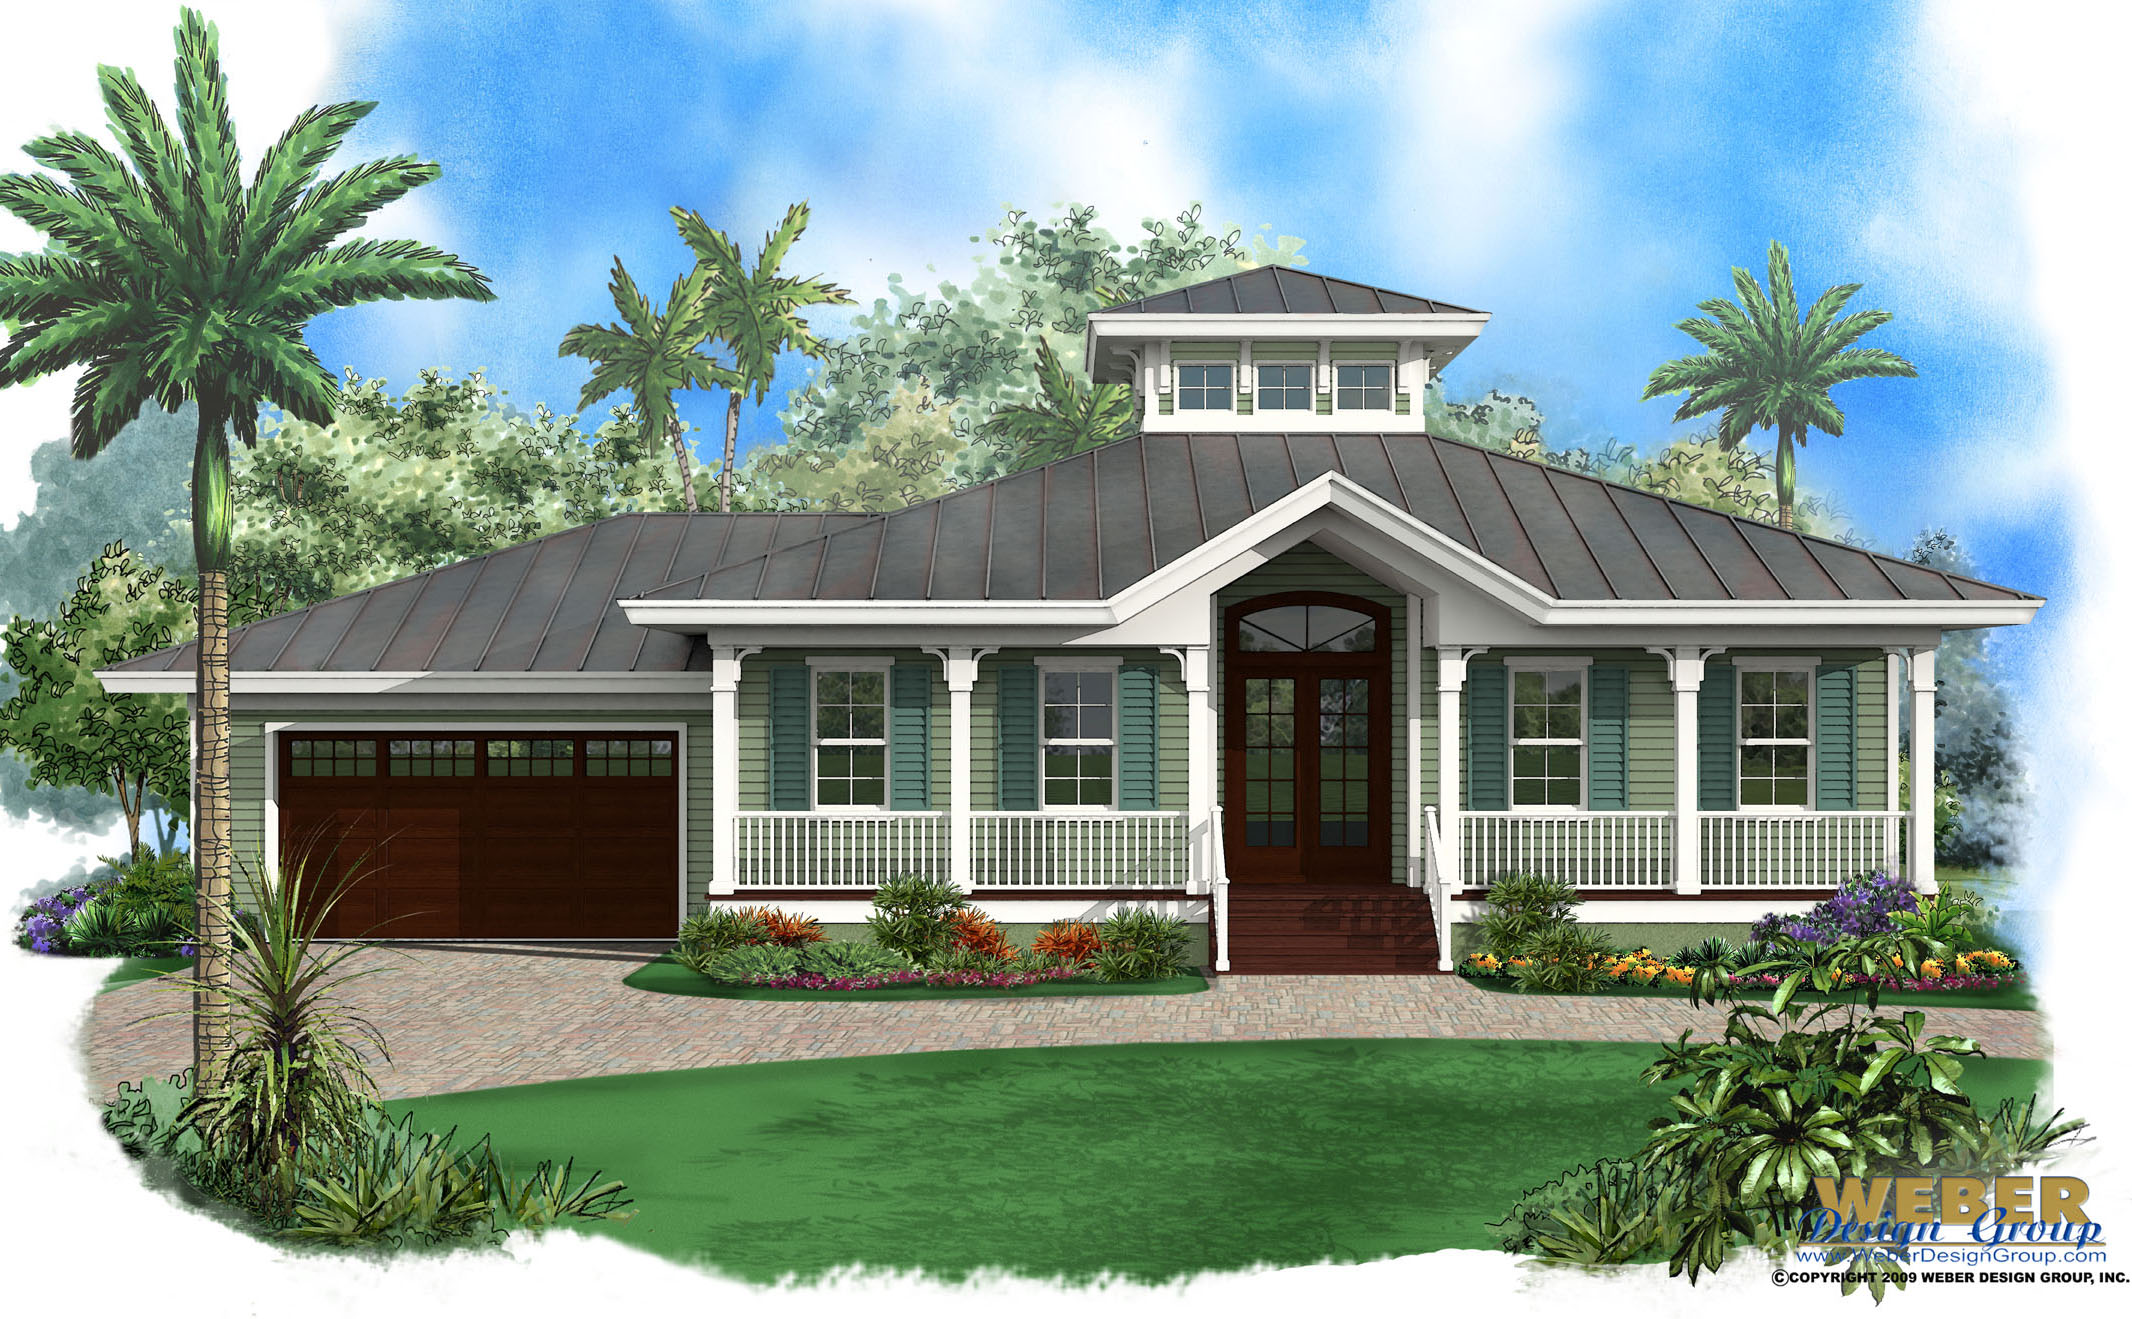 Key west house plans key west island style home floor plans for Island style house plans